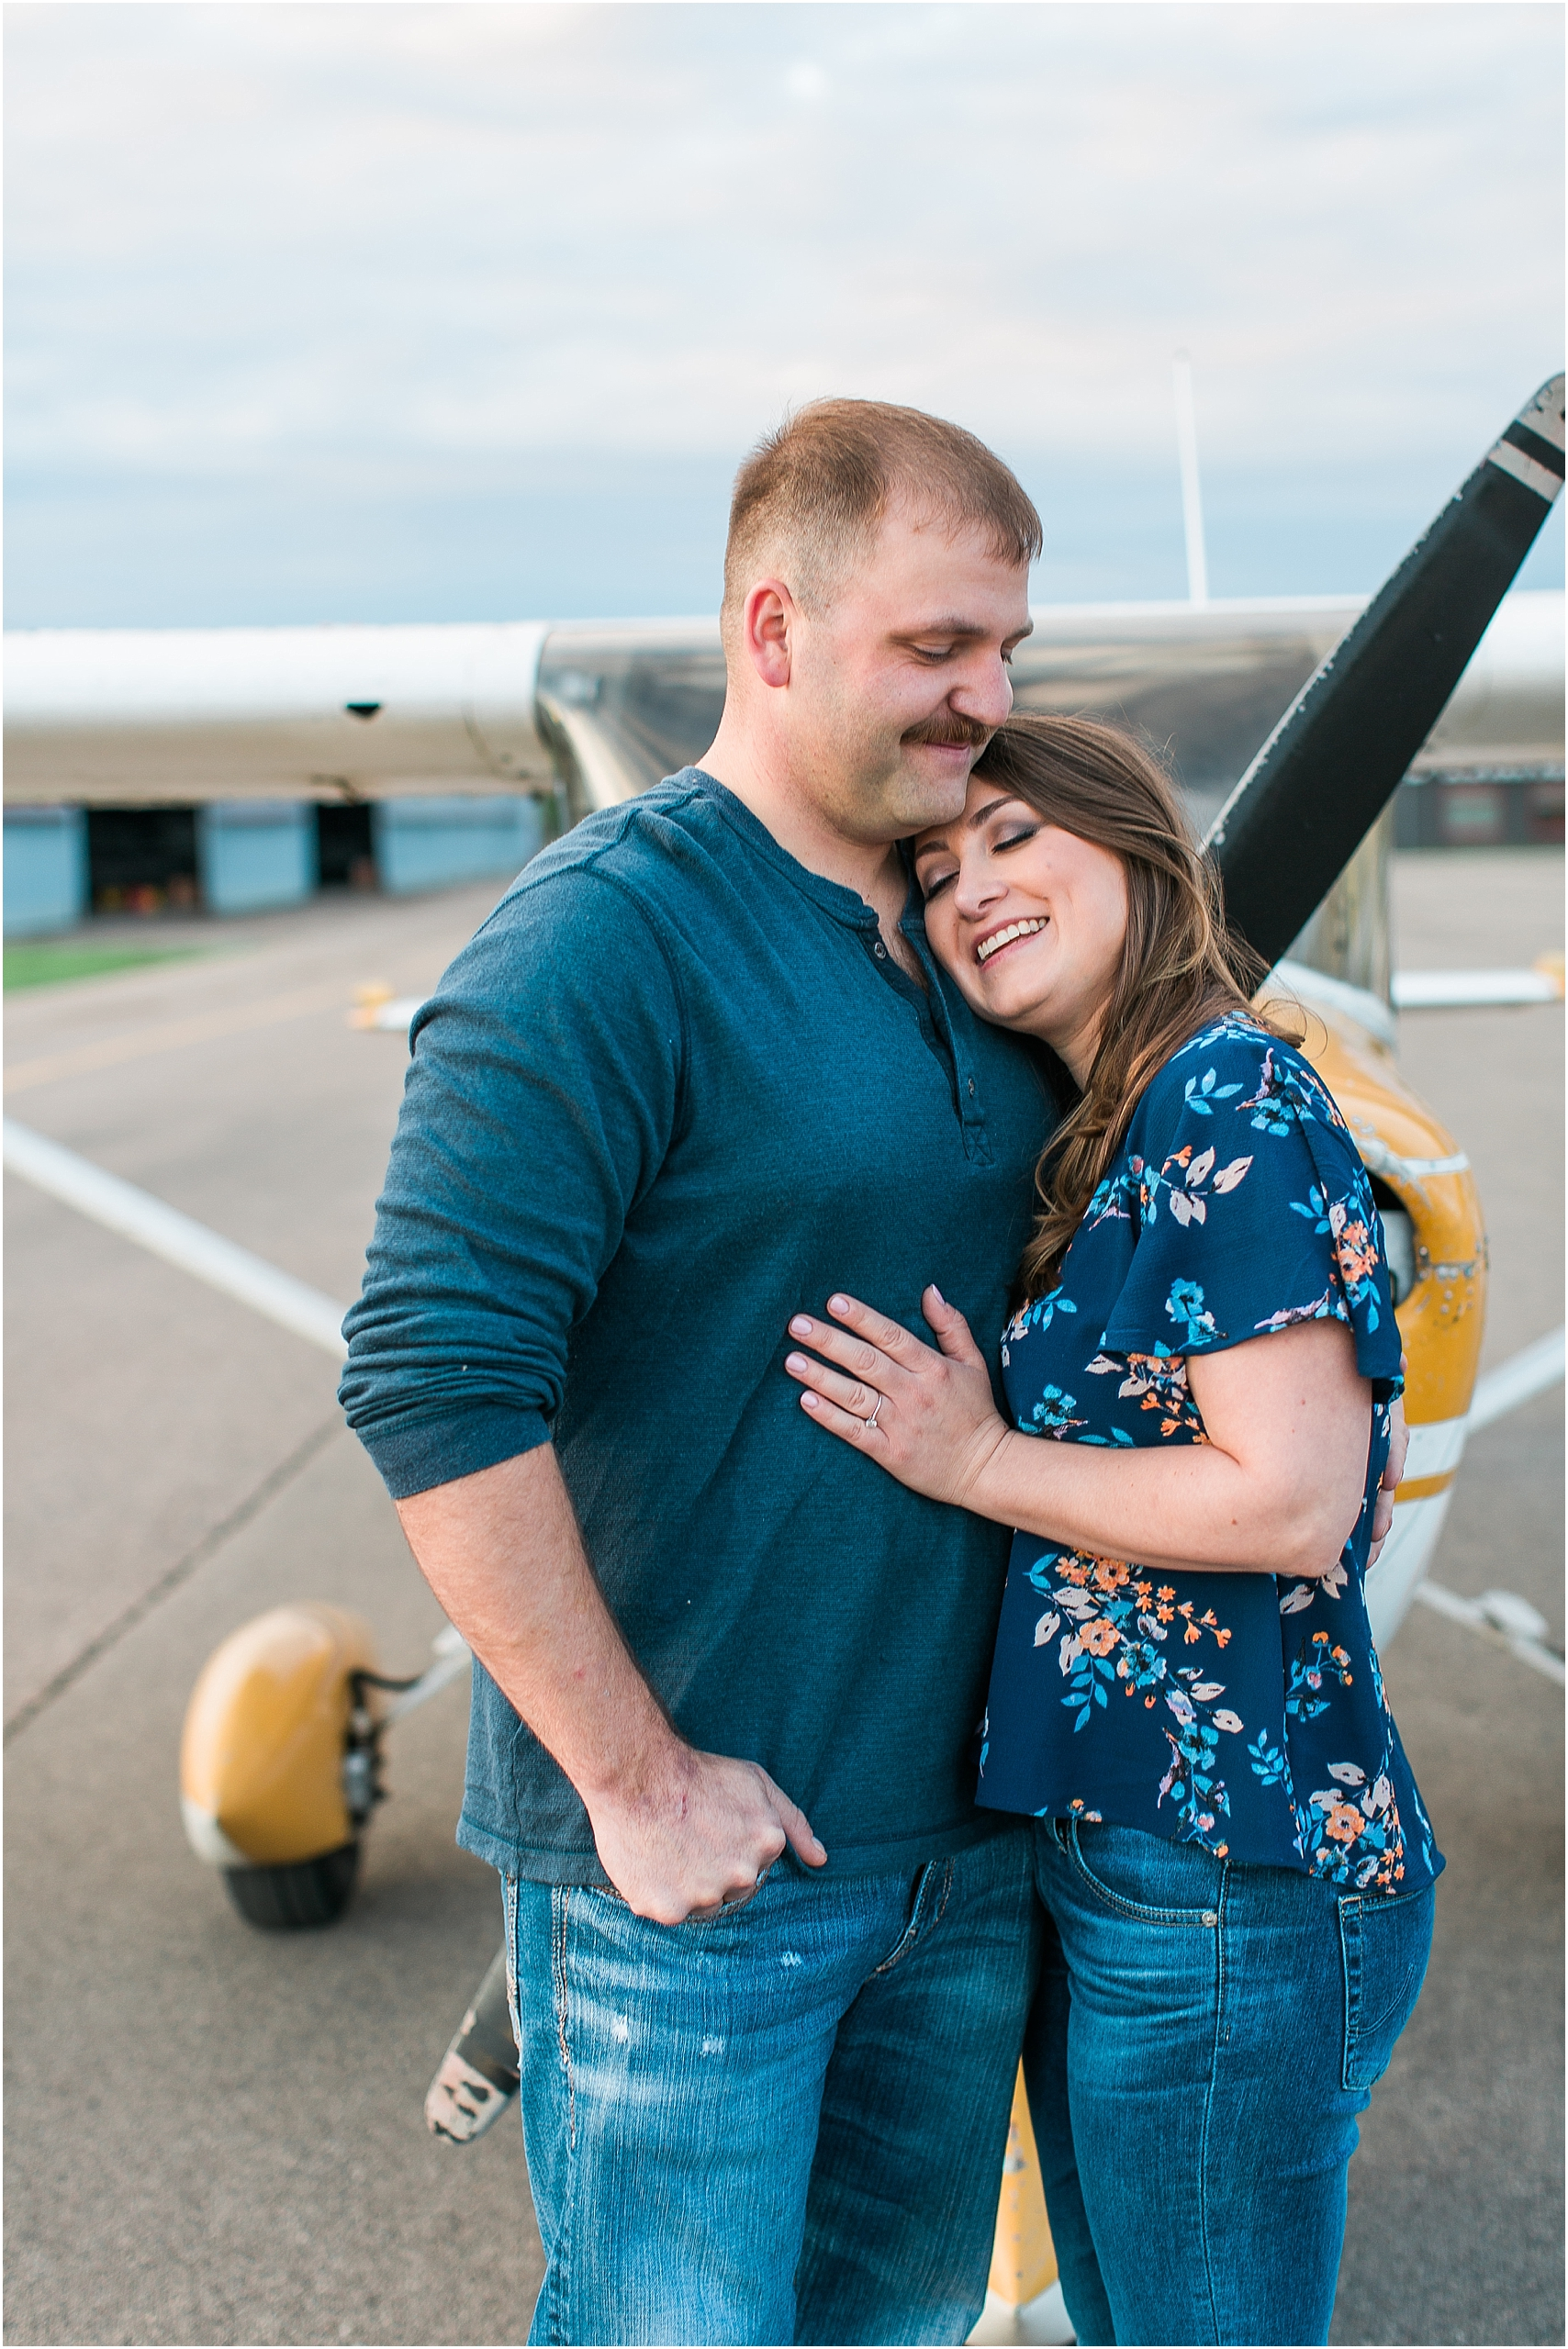 Minneapolis airplane engagement photography session at flying cloud airport in Eden Prairie photographed by Mallory Kiesow Minneapolis engagement and wedding photographer_10.jpg